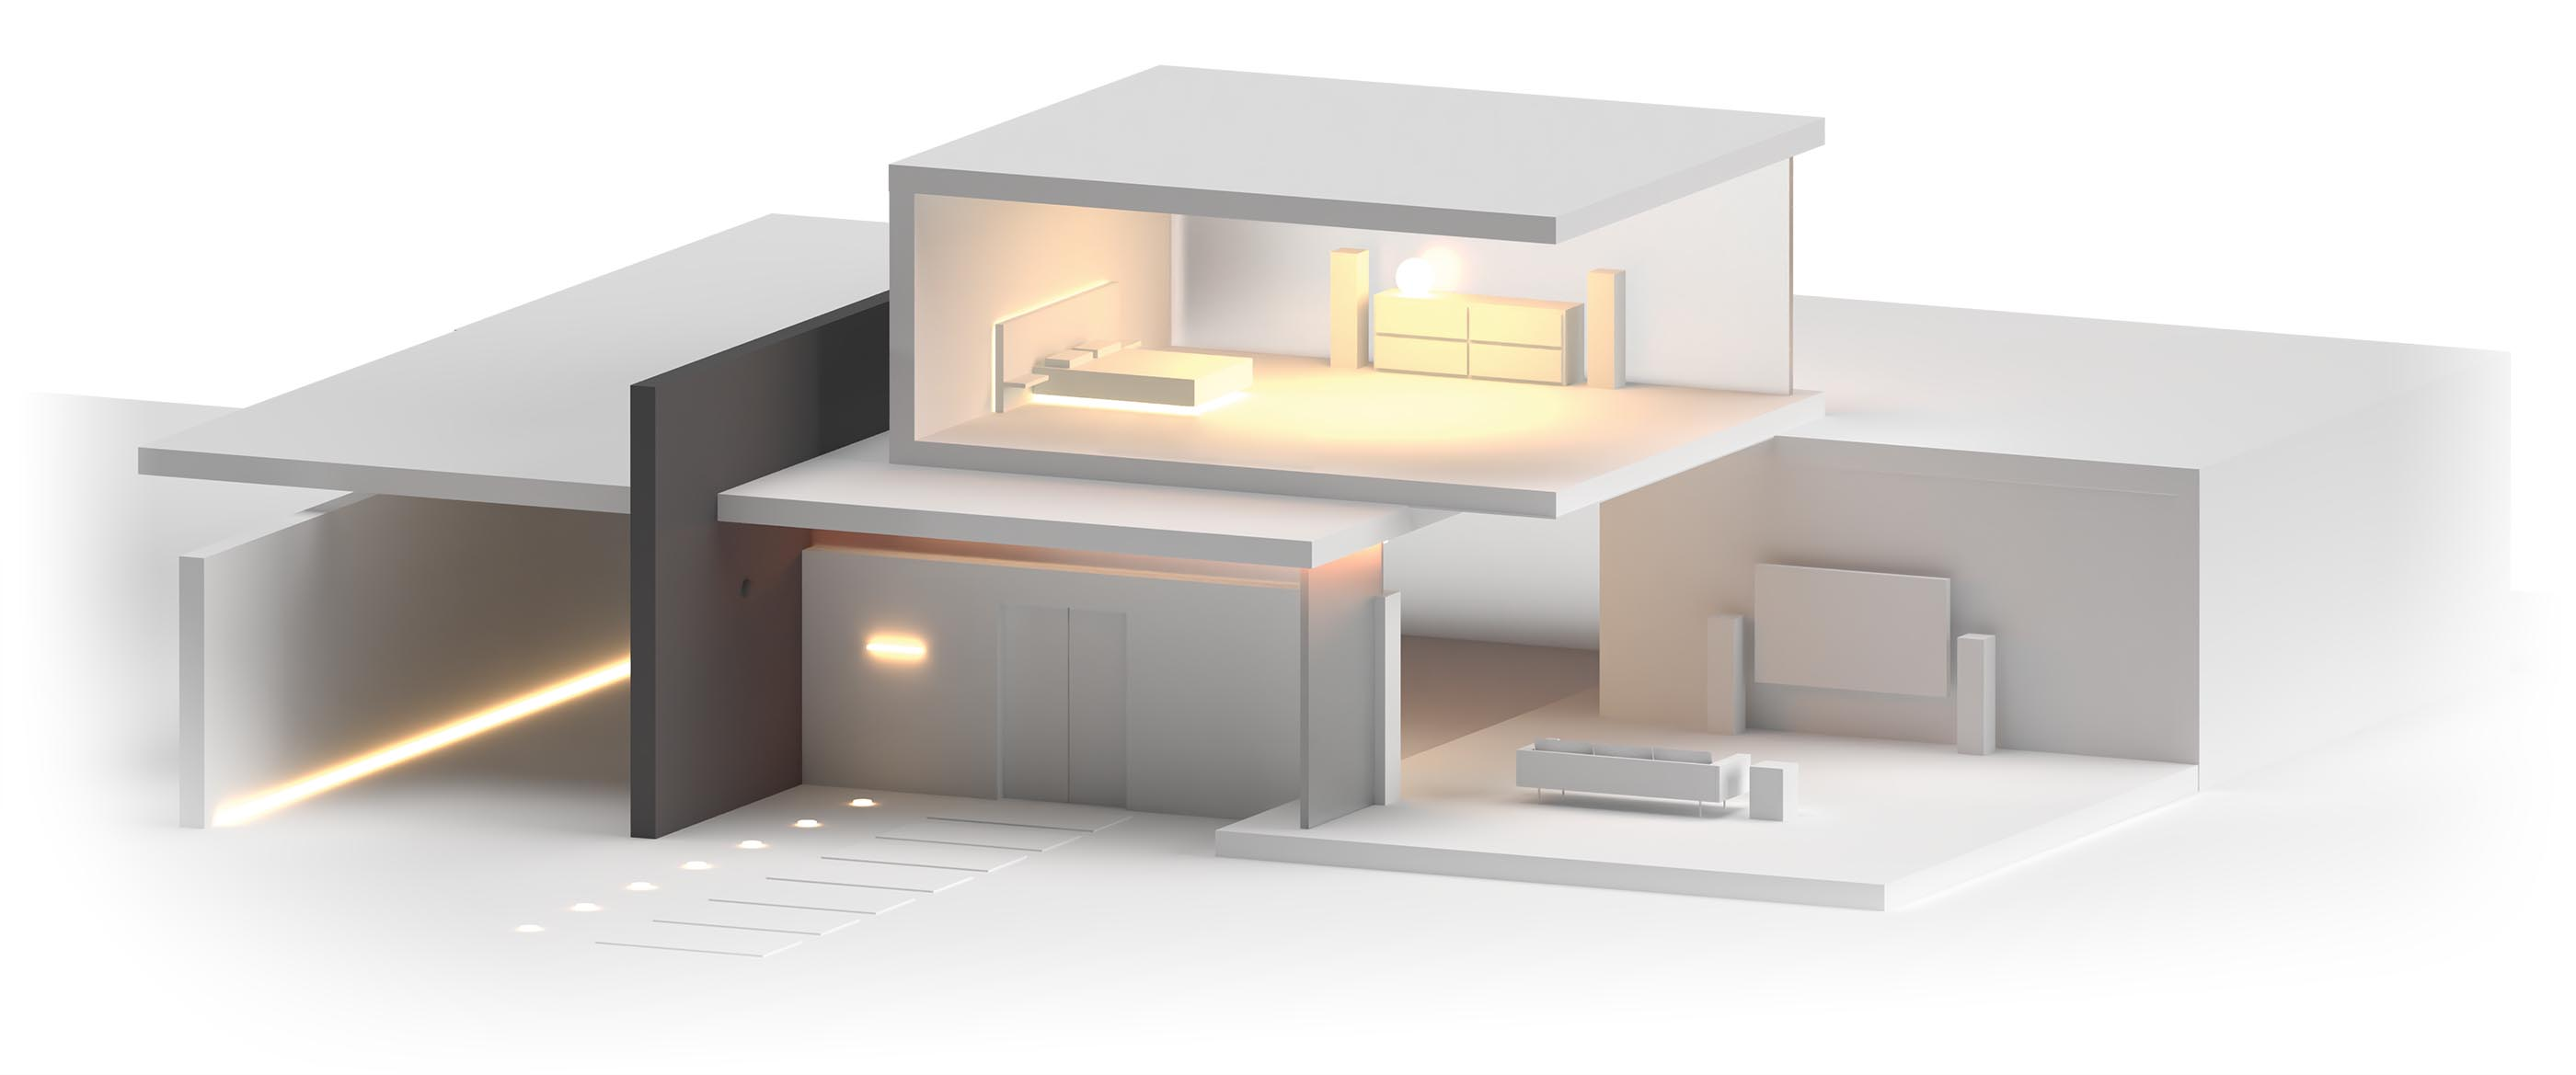 A 3D render of a high end house cutaway to show the bedroom and living room together.